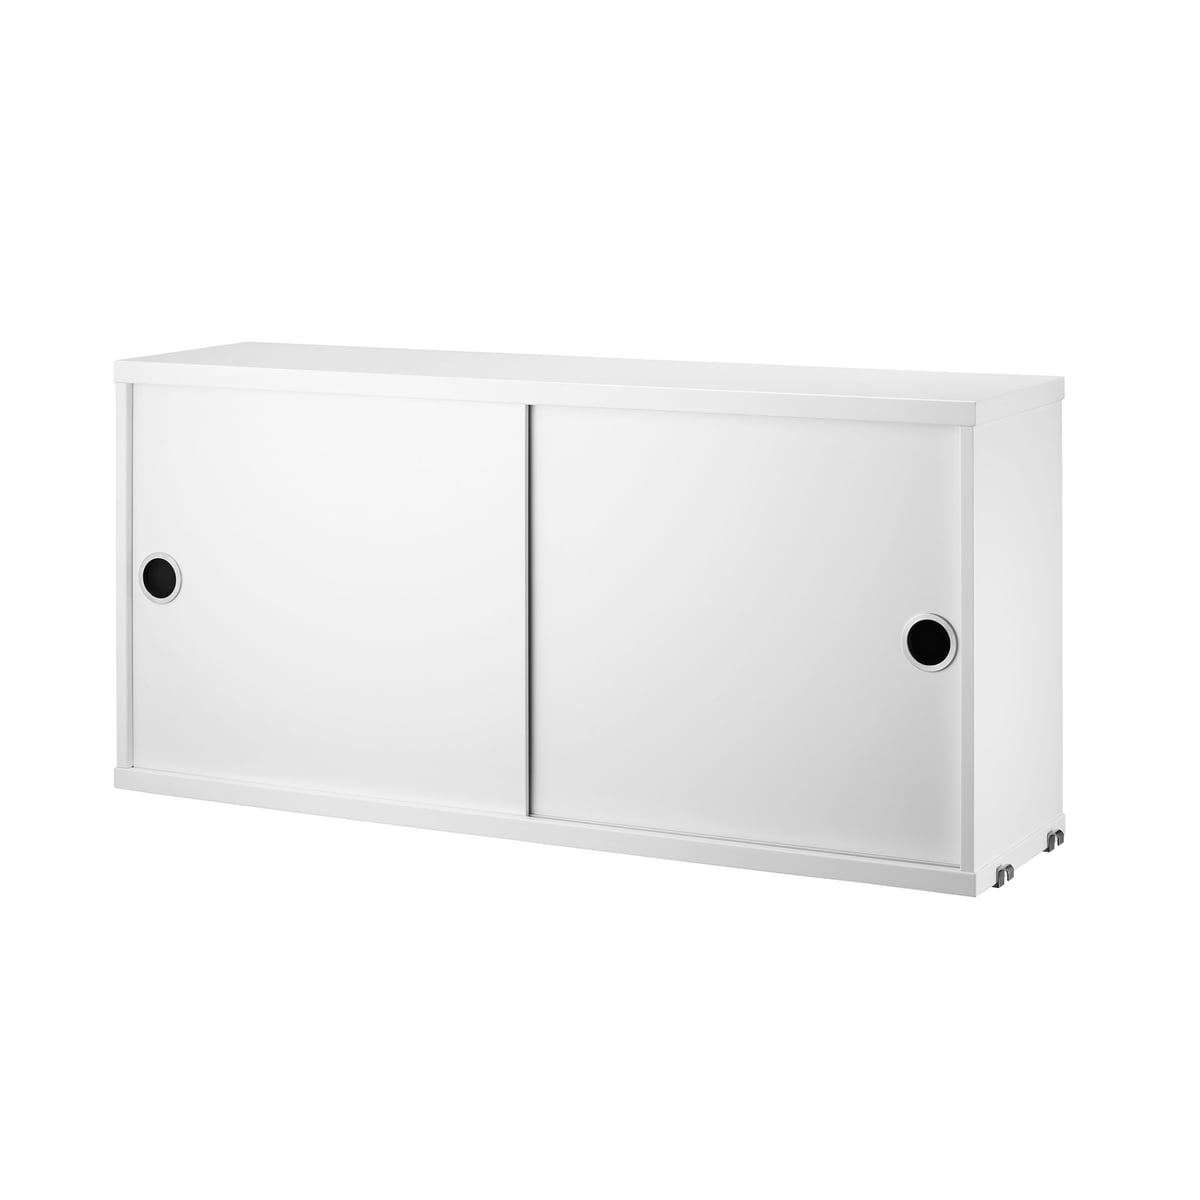 Buy the cabinet with sliding doors by string for Porte coulissante 60 x 96